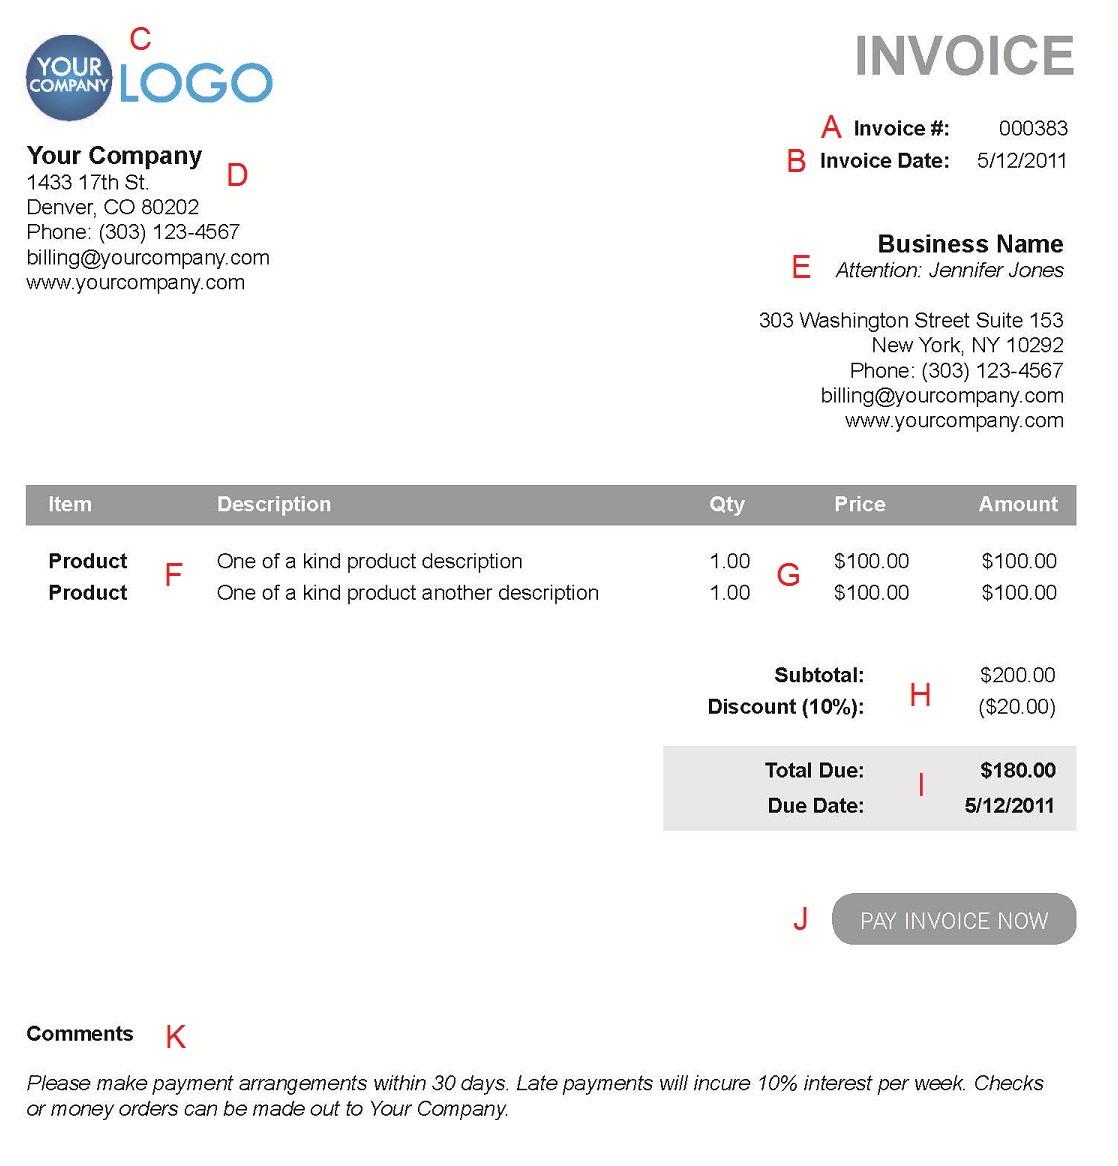 Picnictoimpeachus  Picturesque The  Different Sections Of An Electronic Payment Invoice With Engaging A  With Cute Invoice No Gst Also Invoice Template Word Free Download In Addition Free Invoice App For Ipad And Custom Invoice Software As Well As Google Invoices Templates Free Additionally Doctor Invoice Template From Paysimplecom With Picnictoimpeachus  Engaging The  Different Sections Of An Electronic Payment Invoice With Cute A  And Picturesque Invoice No Gst Also Invoice Template Word Free Download In Addition Free Invoice App For Ipad From Paysimplecom